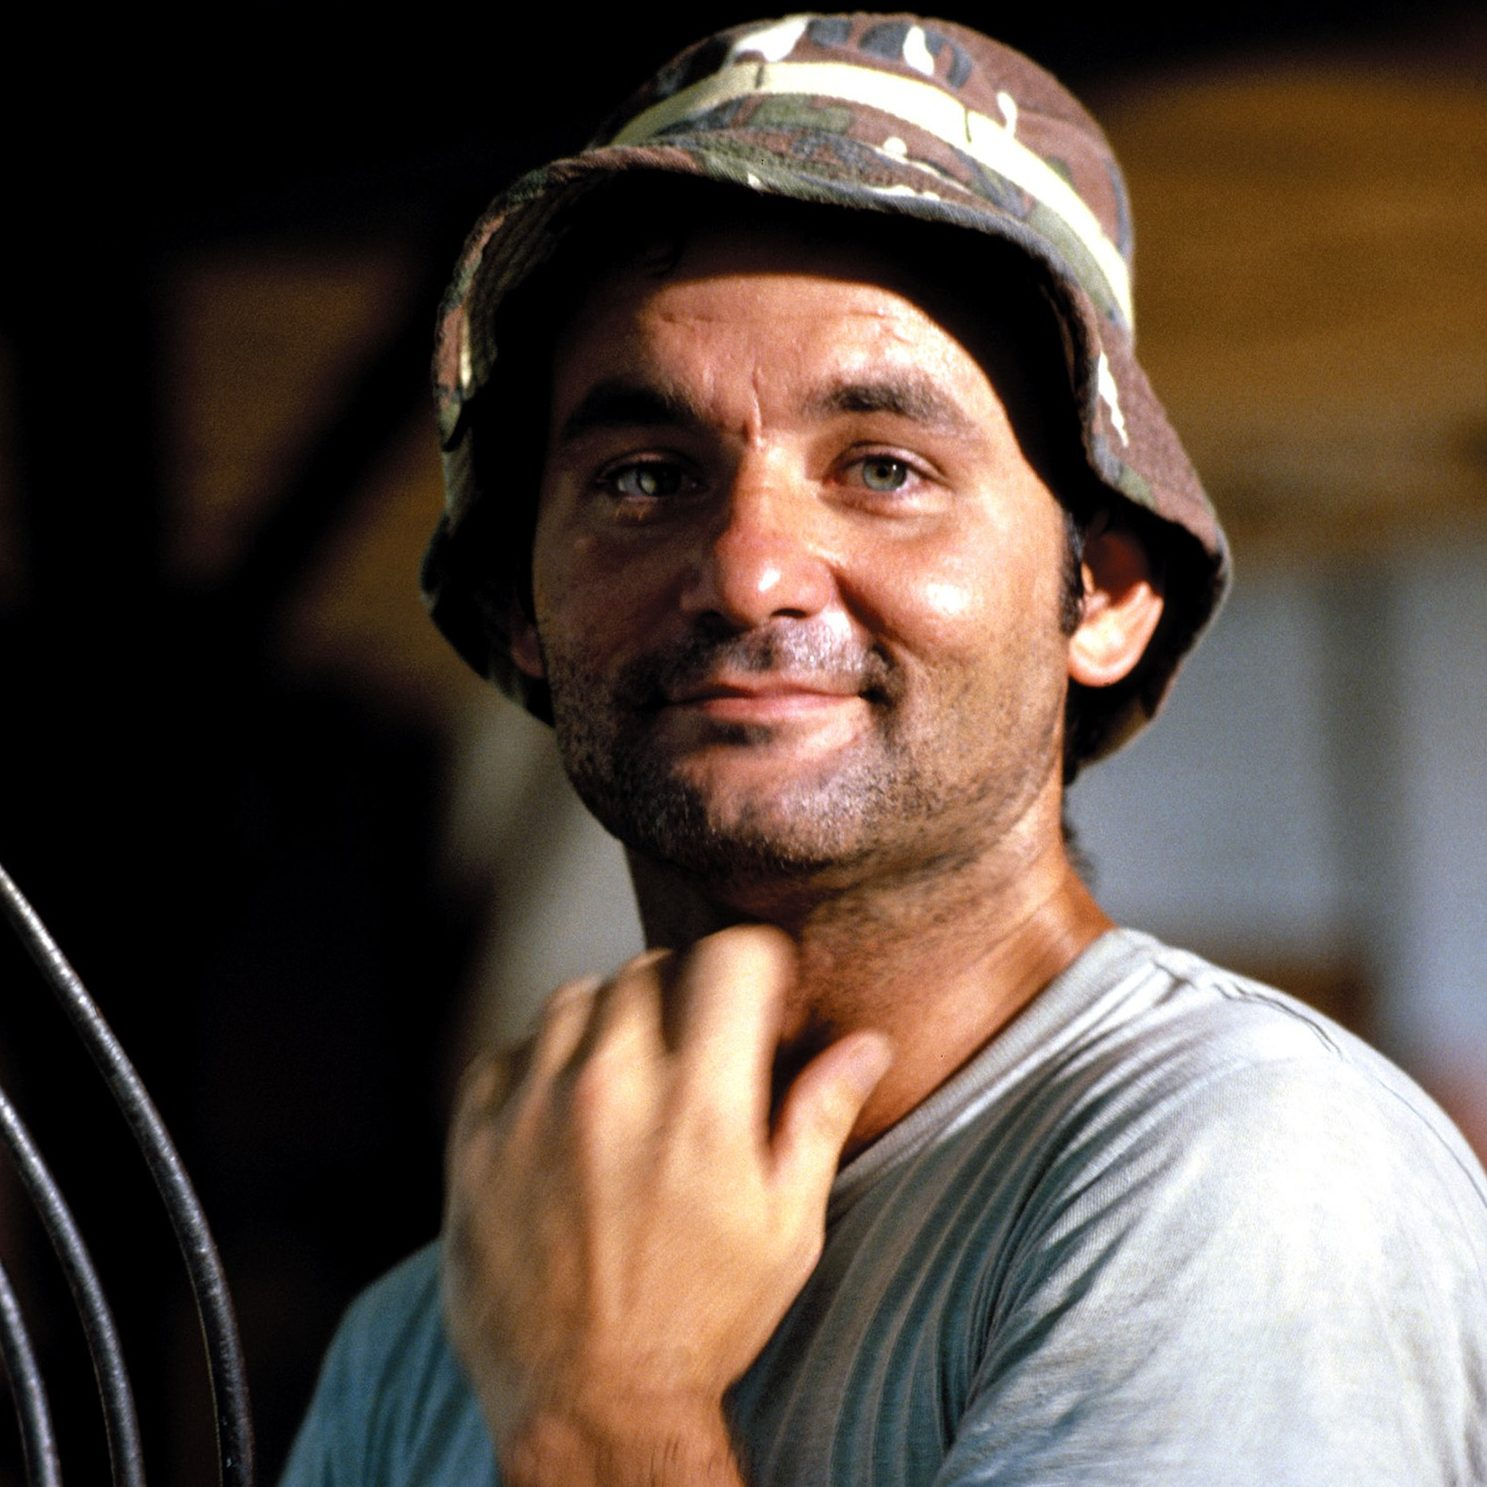 54937 caddyshack bill murray 1980 c orion pictures courtesy ever e1601384616203 Caddyshack: 20 Things You Never Knew About The Comedy Classic